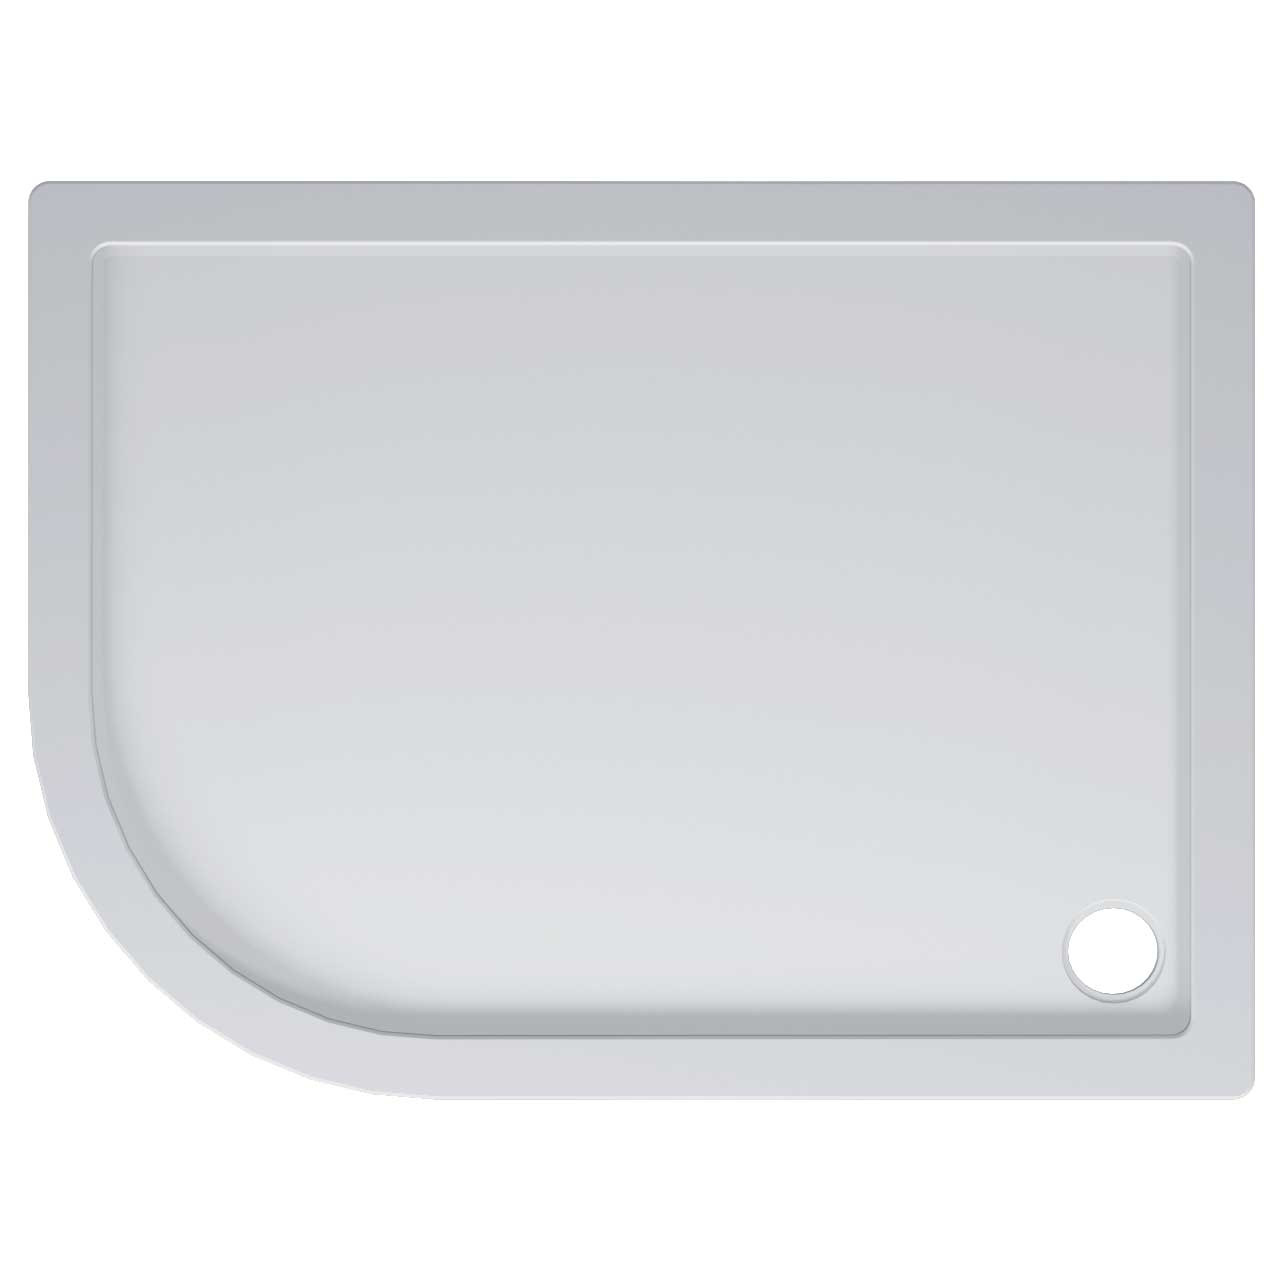 40mm Pearlstone 1200 x 900 Left Hand Offset Quadrant Shower Tray Top View